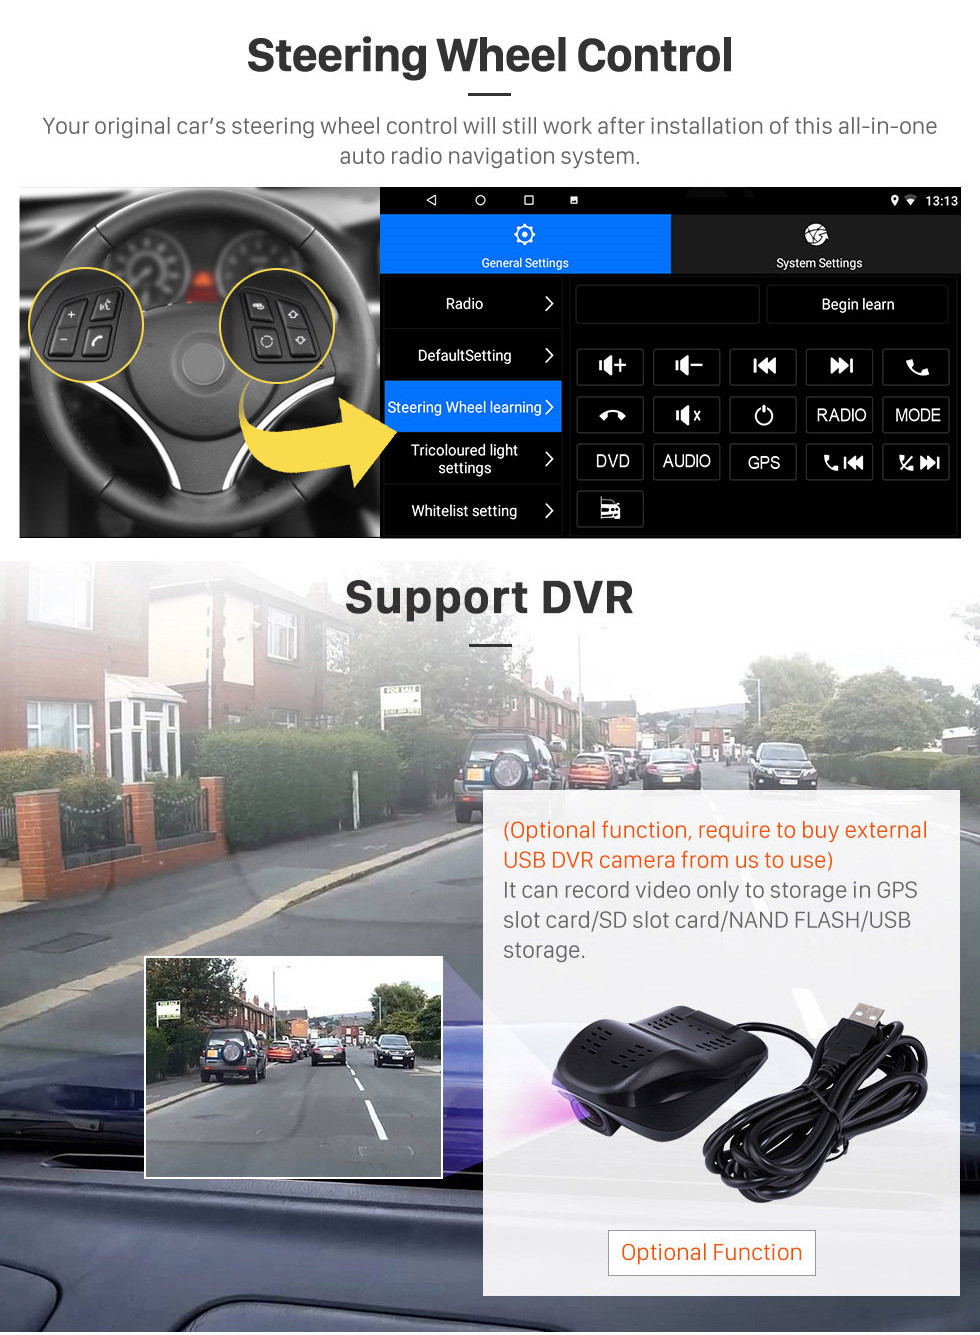 Seicane OEM 9 inch Android 10.0 Radio for 2015-2017 Honda BRV LHD Bluetooth Wifi HD Touchscreen GPS Navigation support Carplay DVR OBD Rearview camera